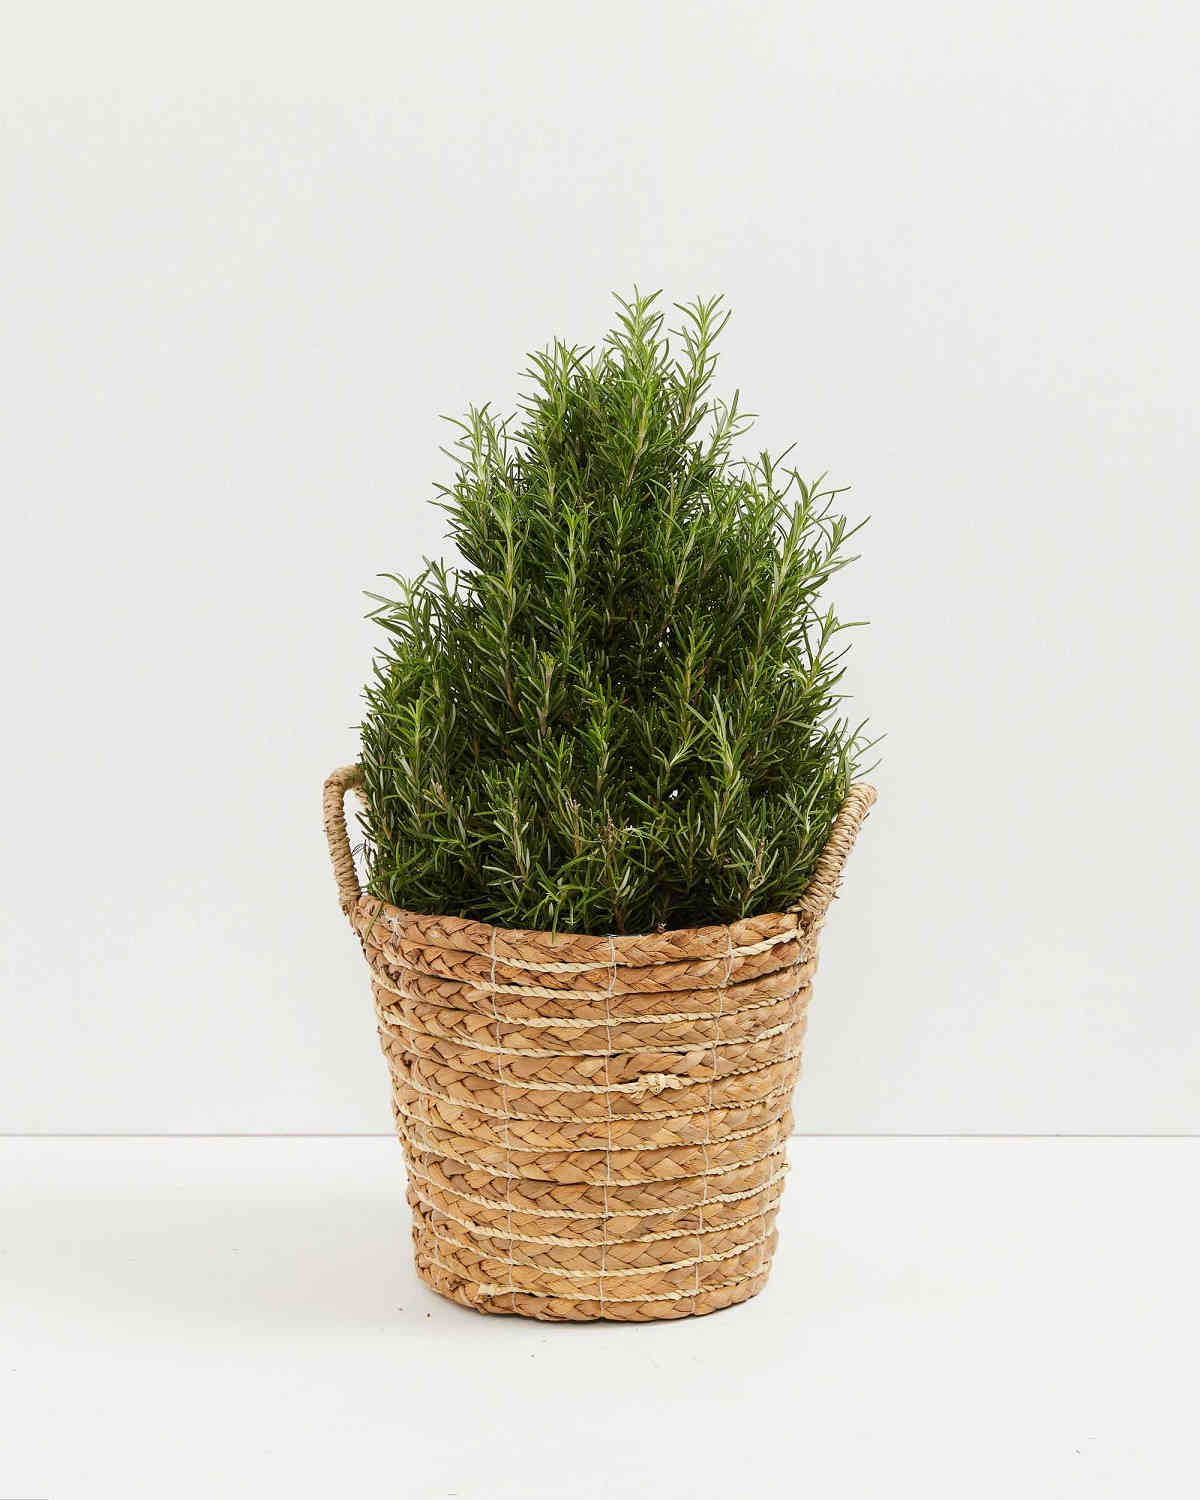 rosemary plant shaped like a christmas tree in a woven basket